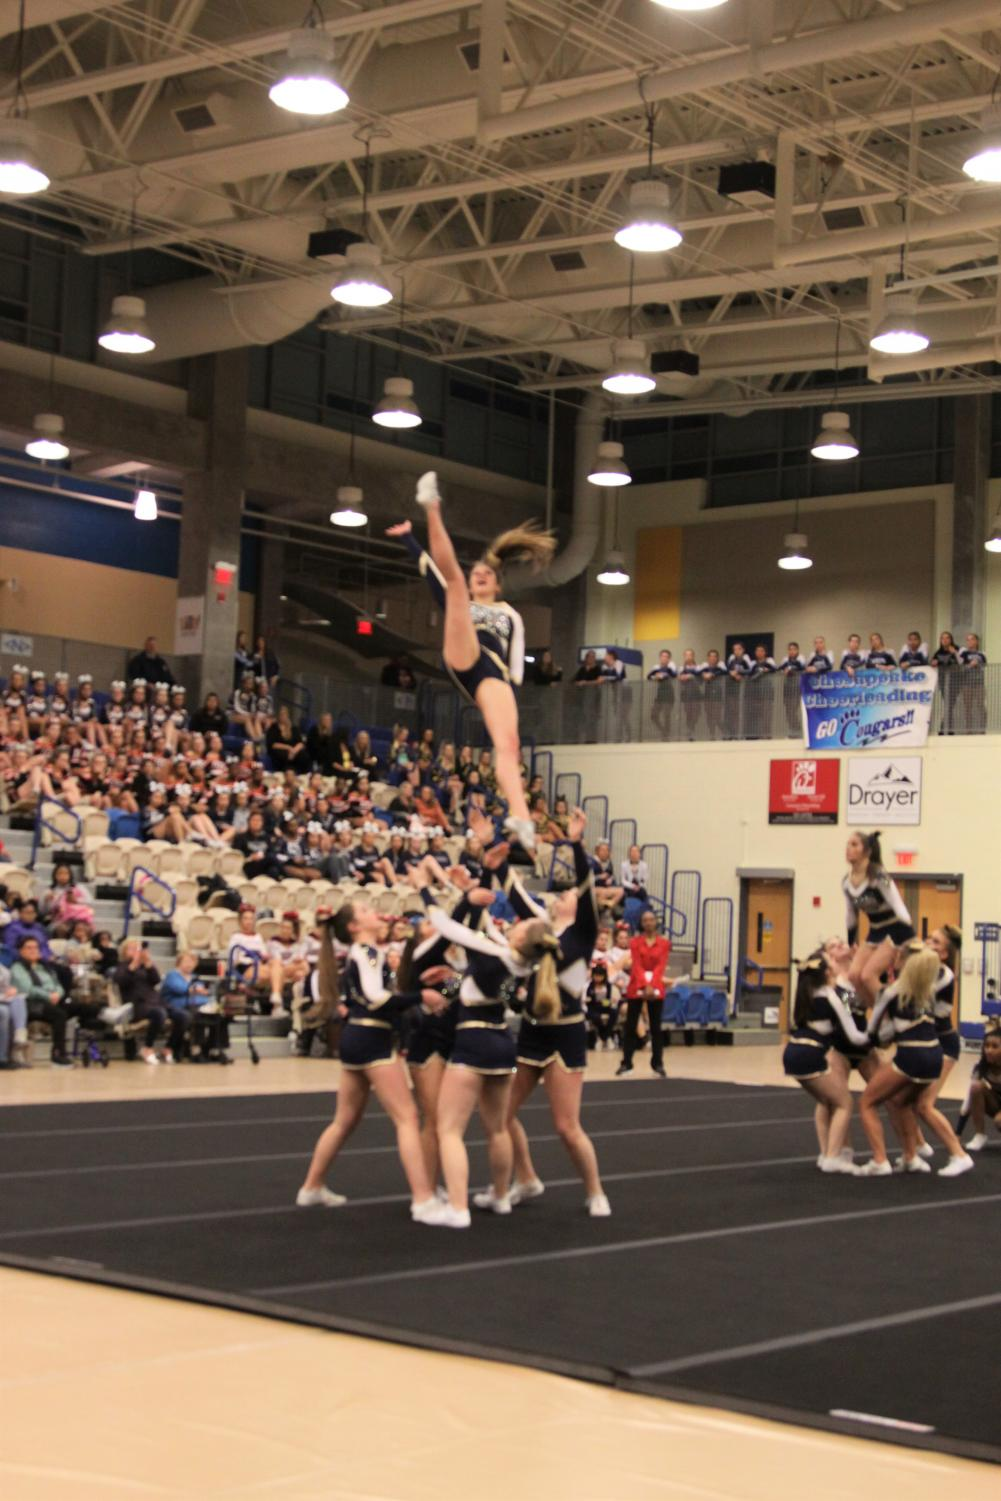 The cheer team doing a stunt at the state championship competition. The team placed tenth in their first ever appearance in states.